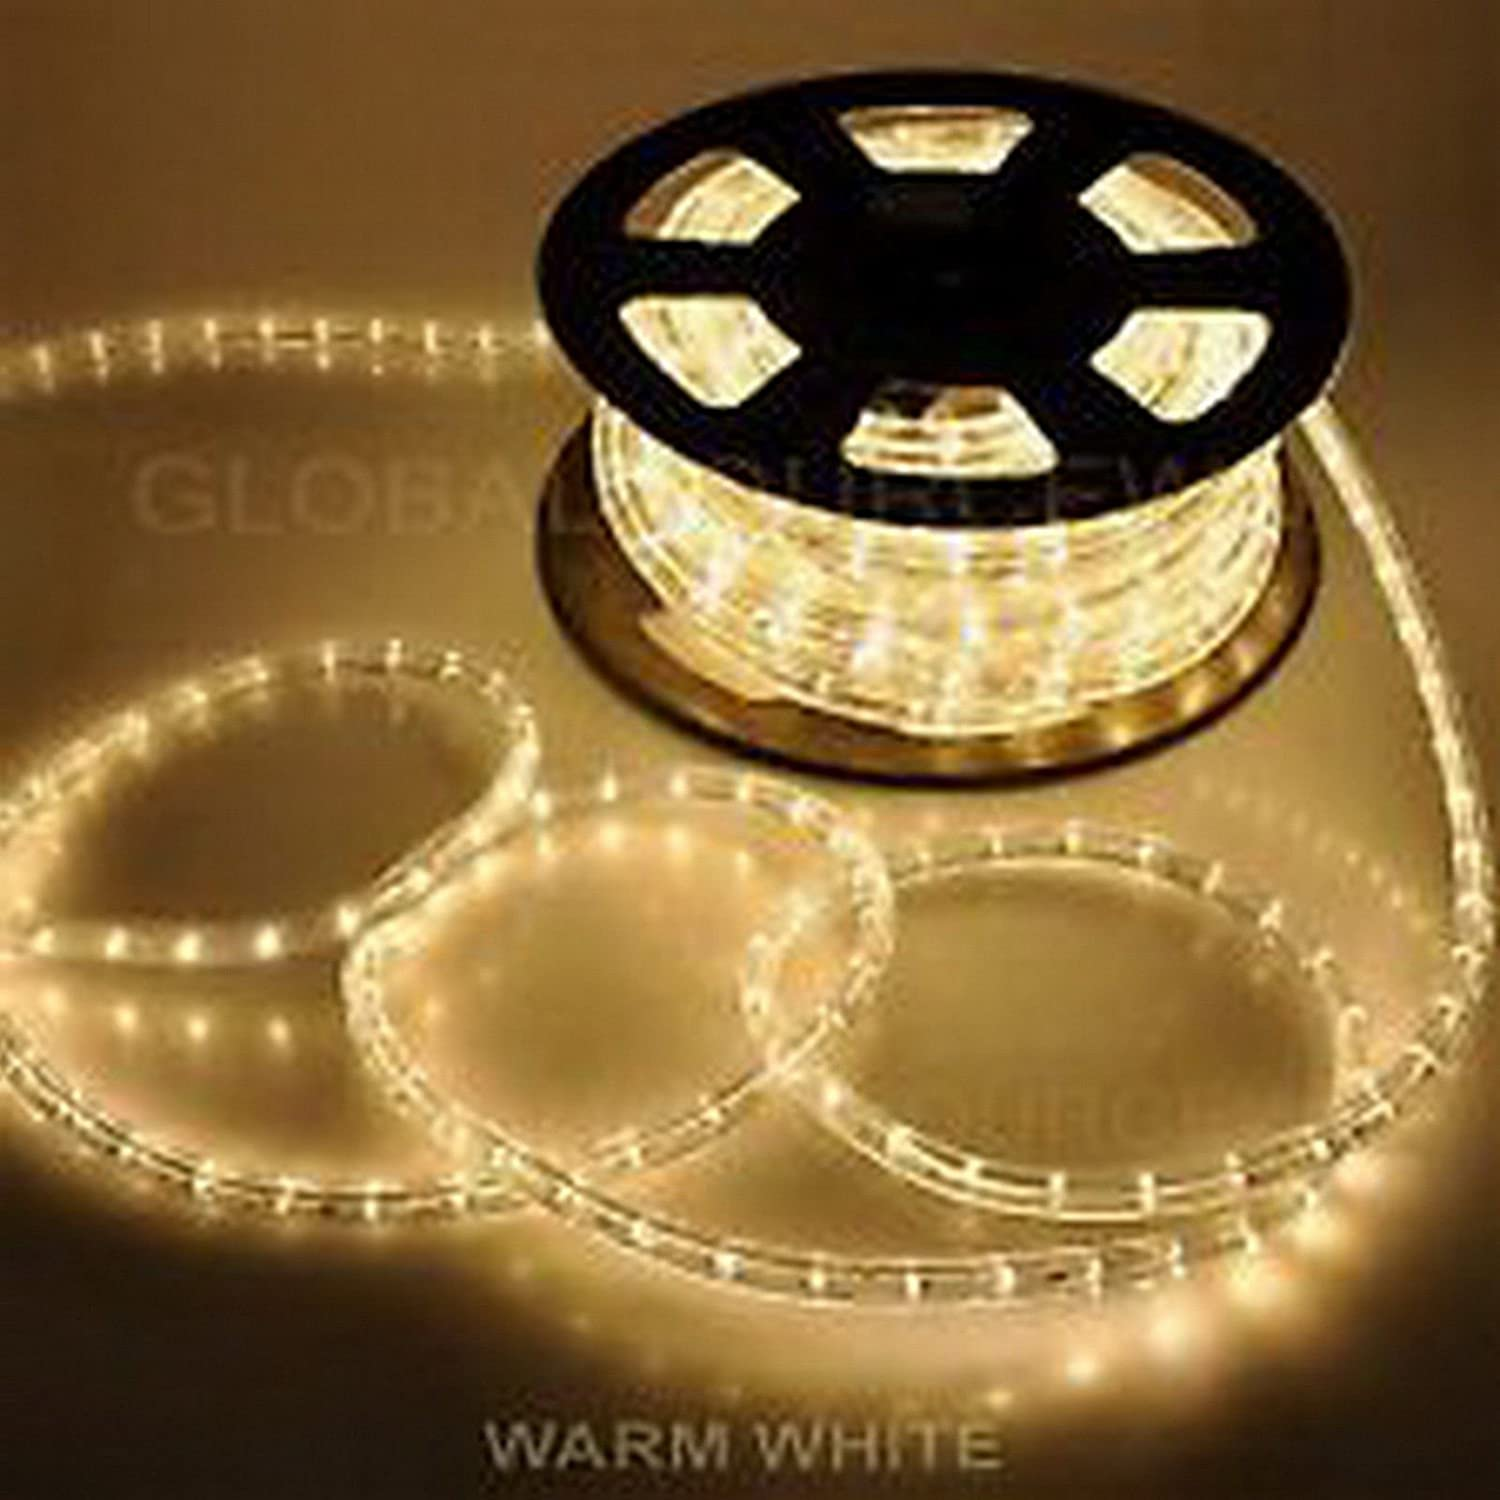 Amazon incandescent warm white rope light 12 in 2 amazon incandescent warm white rope light 12 in 2 wire 120 volt 150 ft spool american 033 cl home improvement mozeypictures